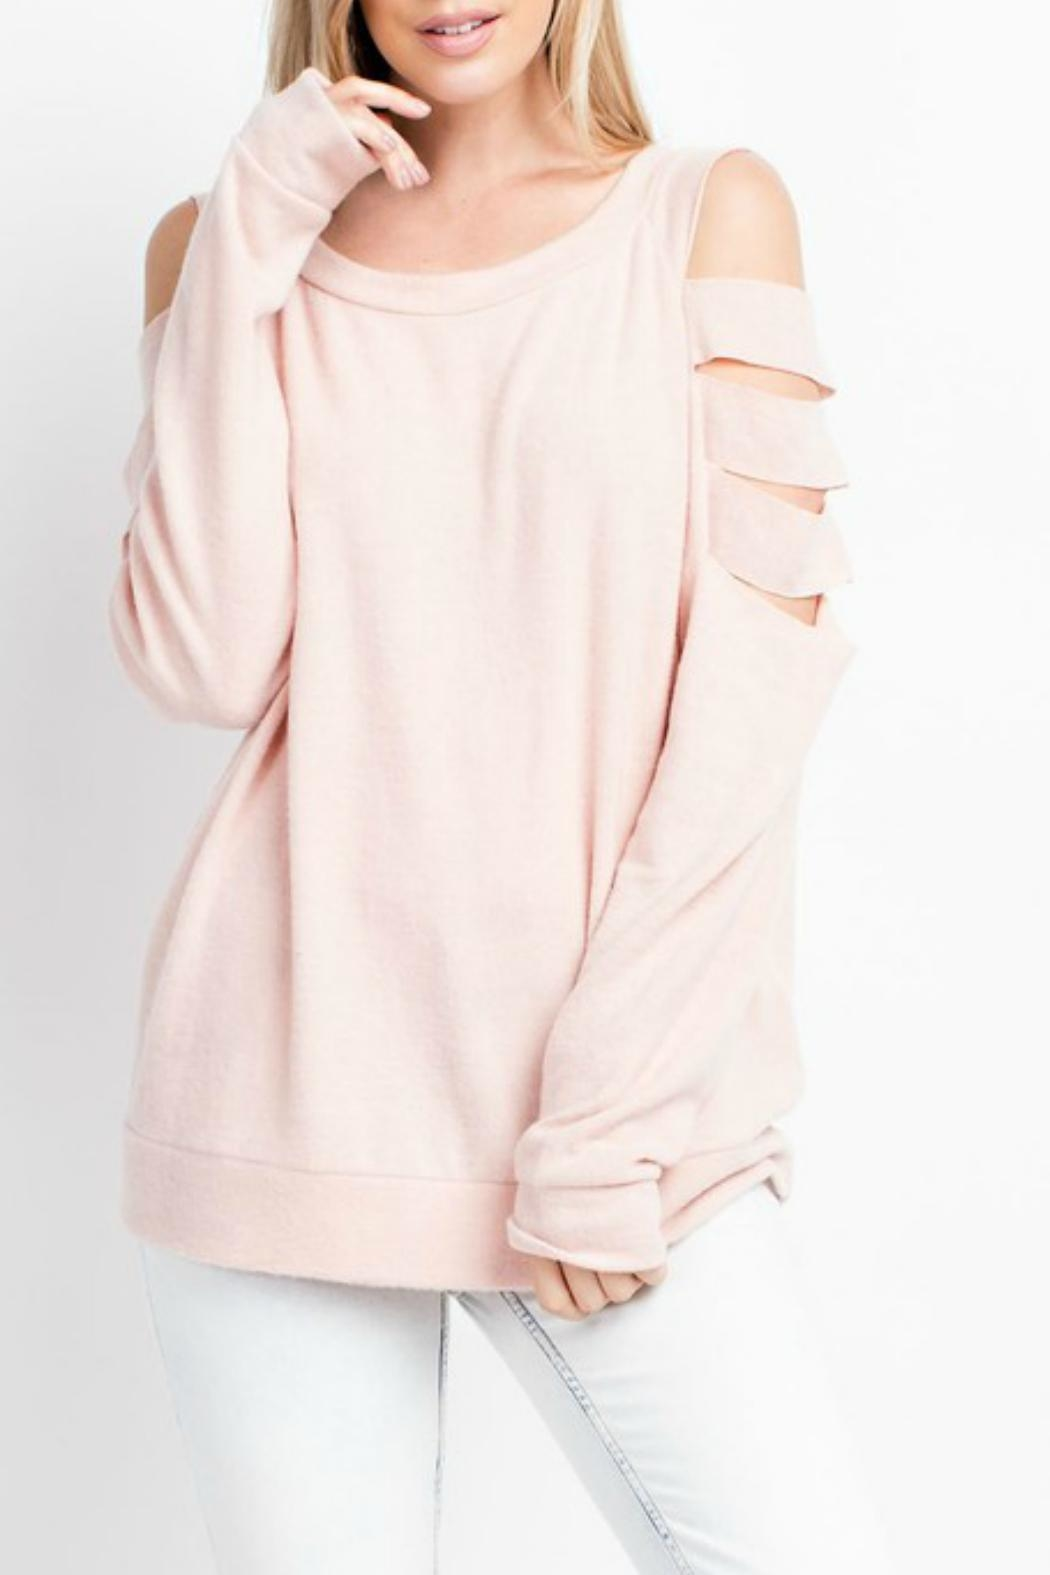 143 Story Welcome-To-Spring Tunic Top - Main Image